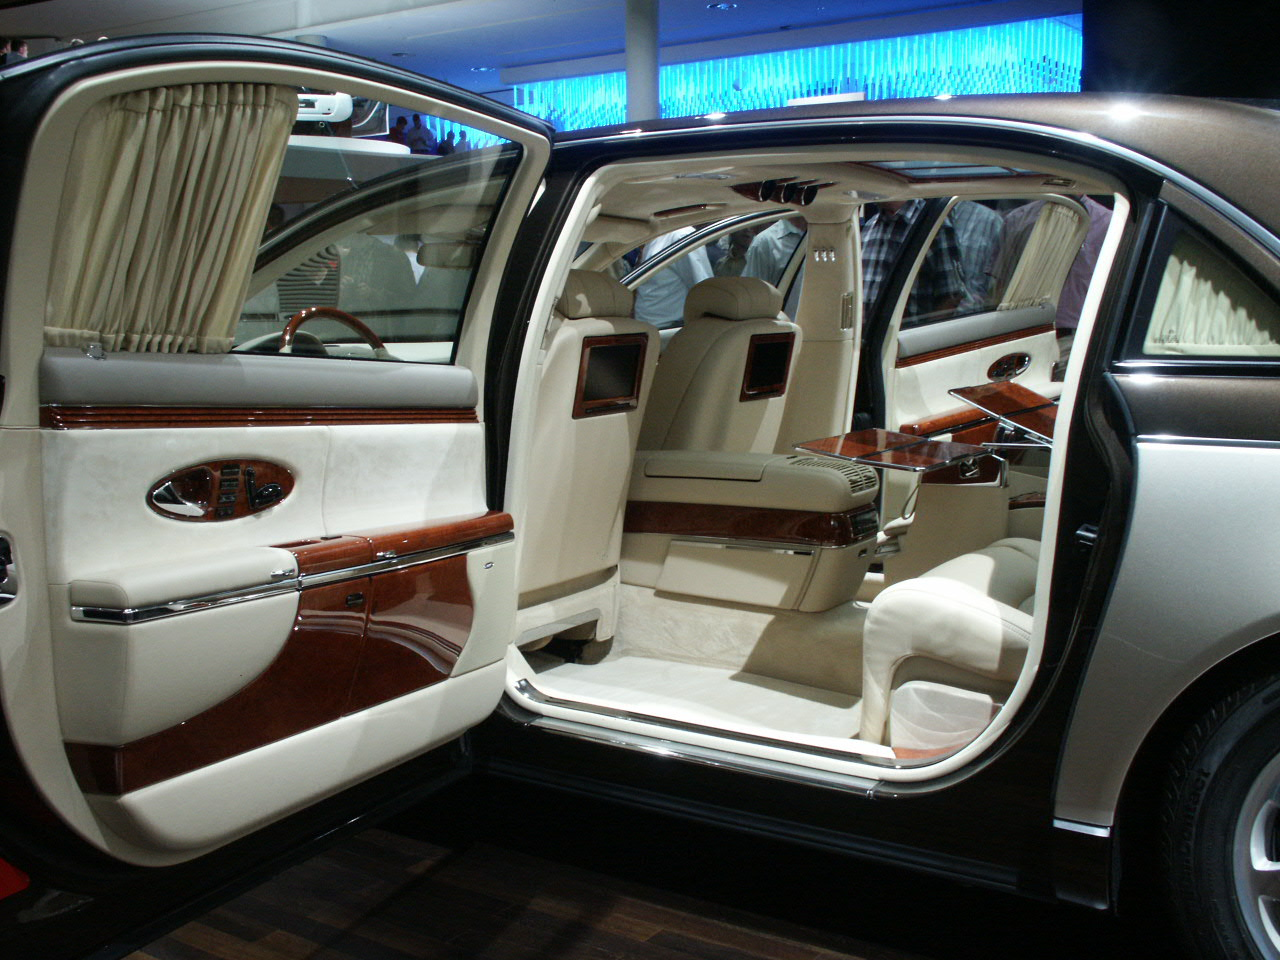 Maybach 62. Author: jurn. Date: 08.03.2012. Views: 3164. Car made in Germany